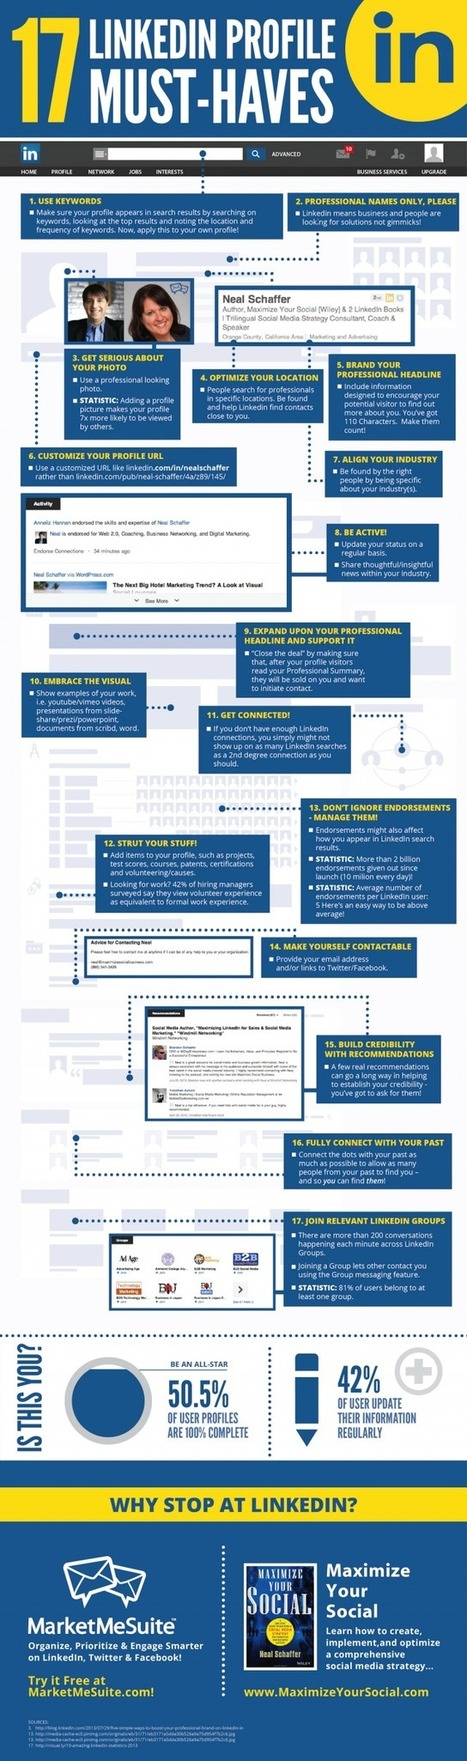 LinkedIn Profile Must Have 17 Tips | Digital Marketing Startegy | Technology | SEO | Social Media | Scoop.it